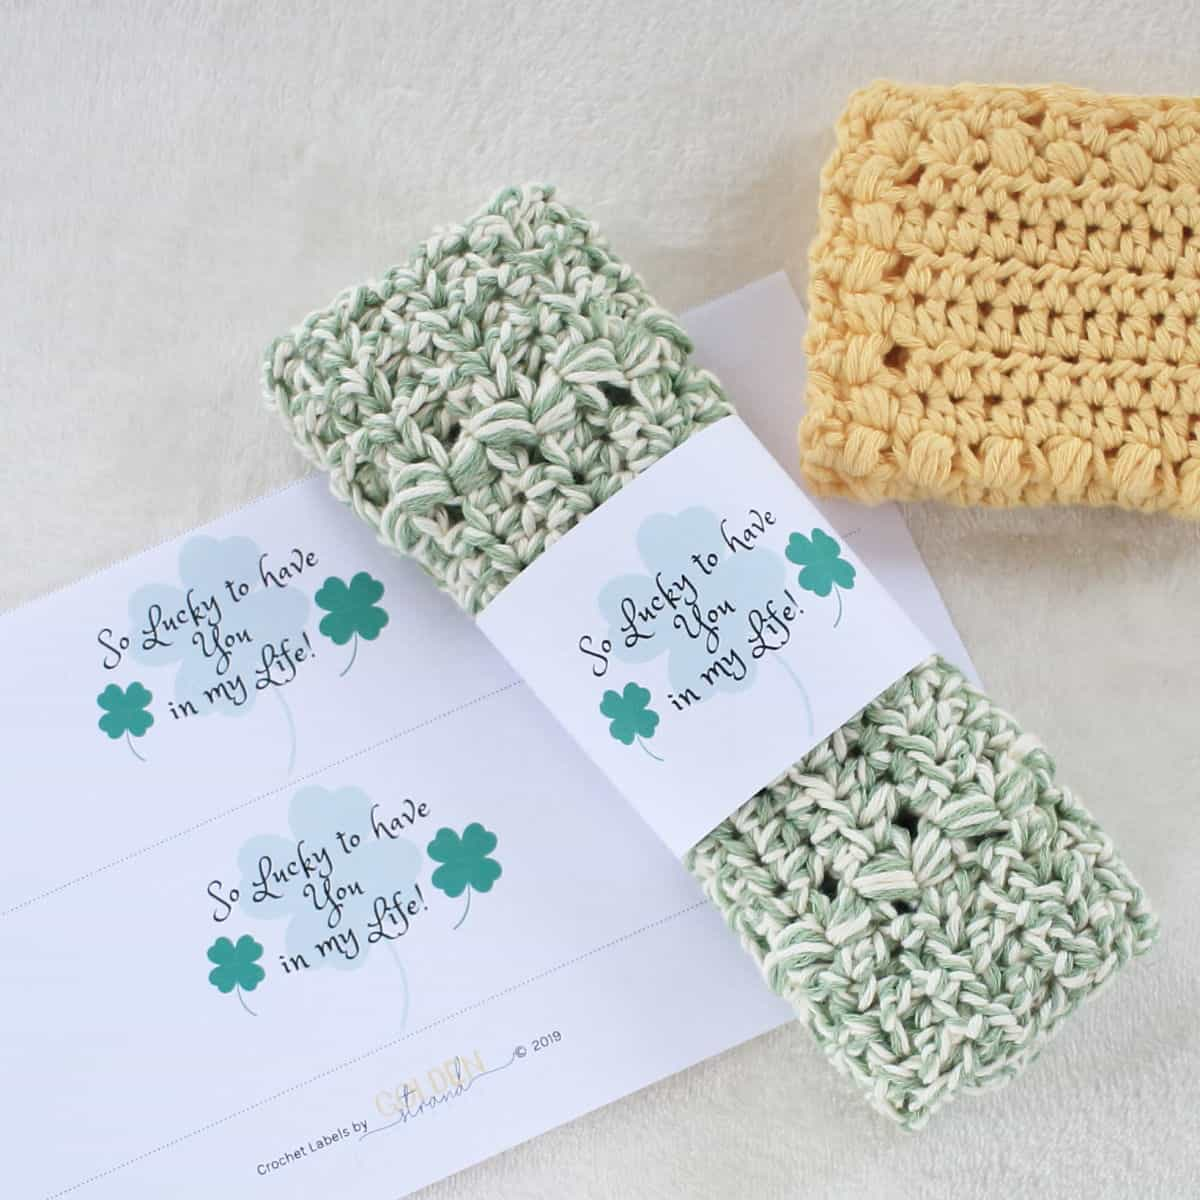 Wrap DIY Handmade Dishcloths with These Special Gift Wraps